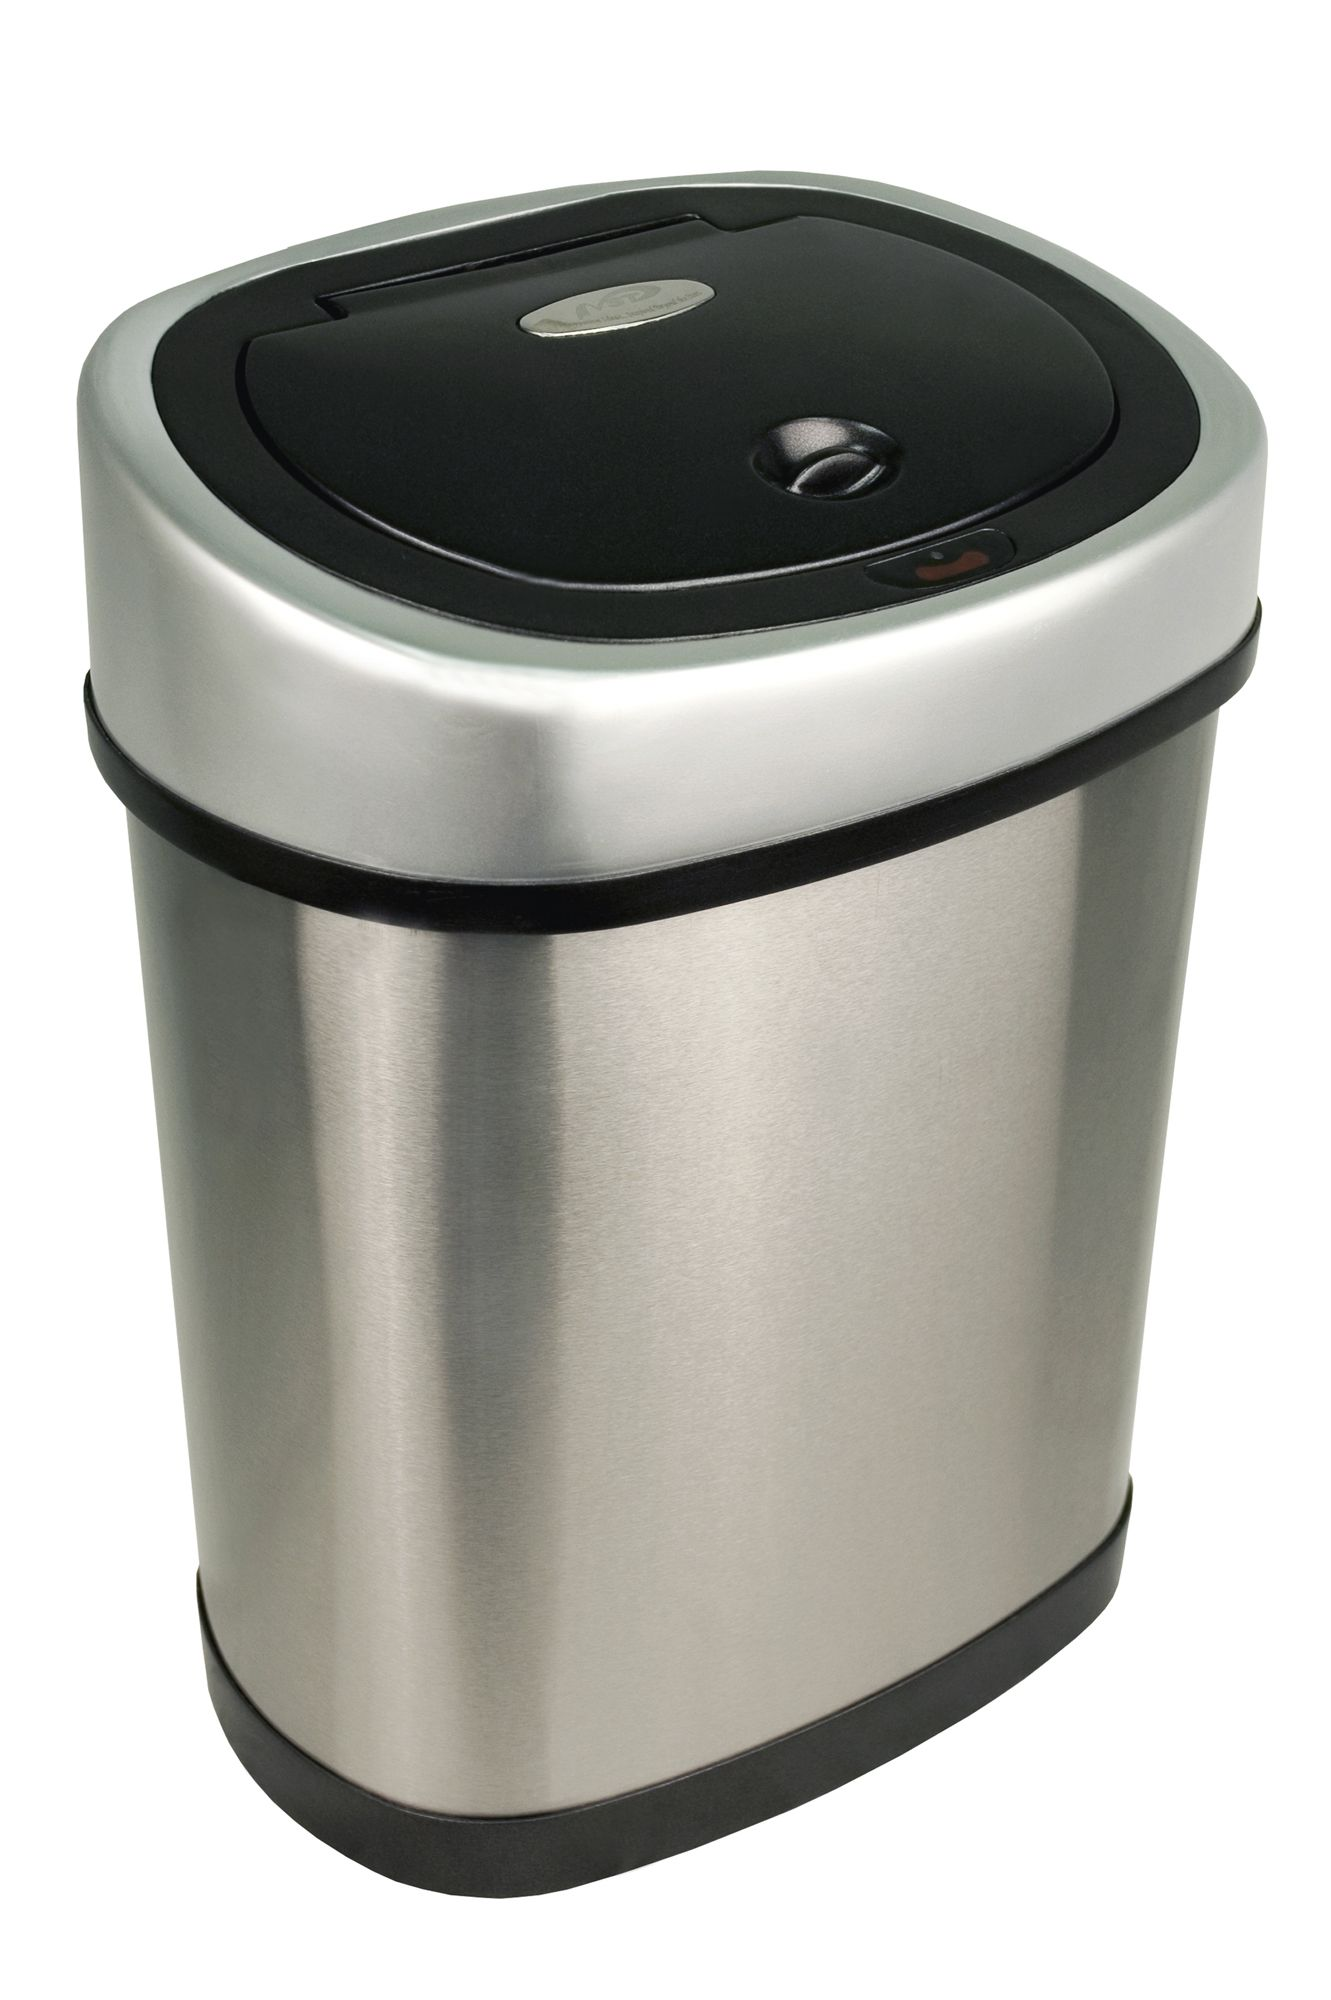 Modern Bathroom Trash Cans Nine Stars Infrared Motion Sensor Lid Open Trash Can